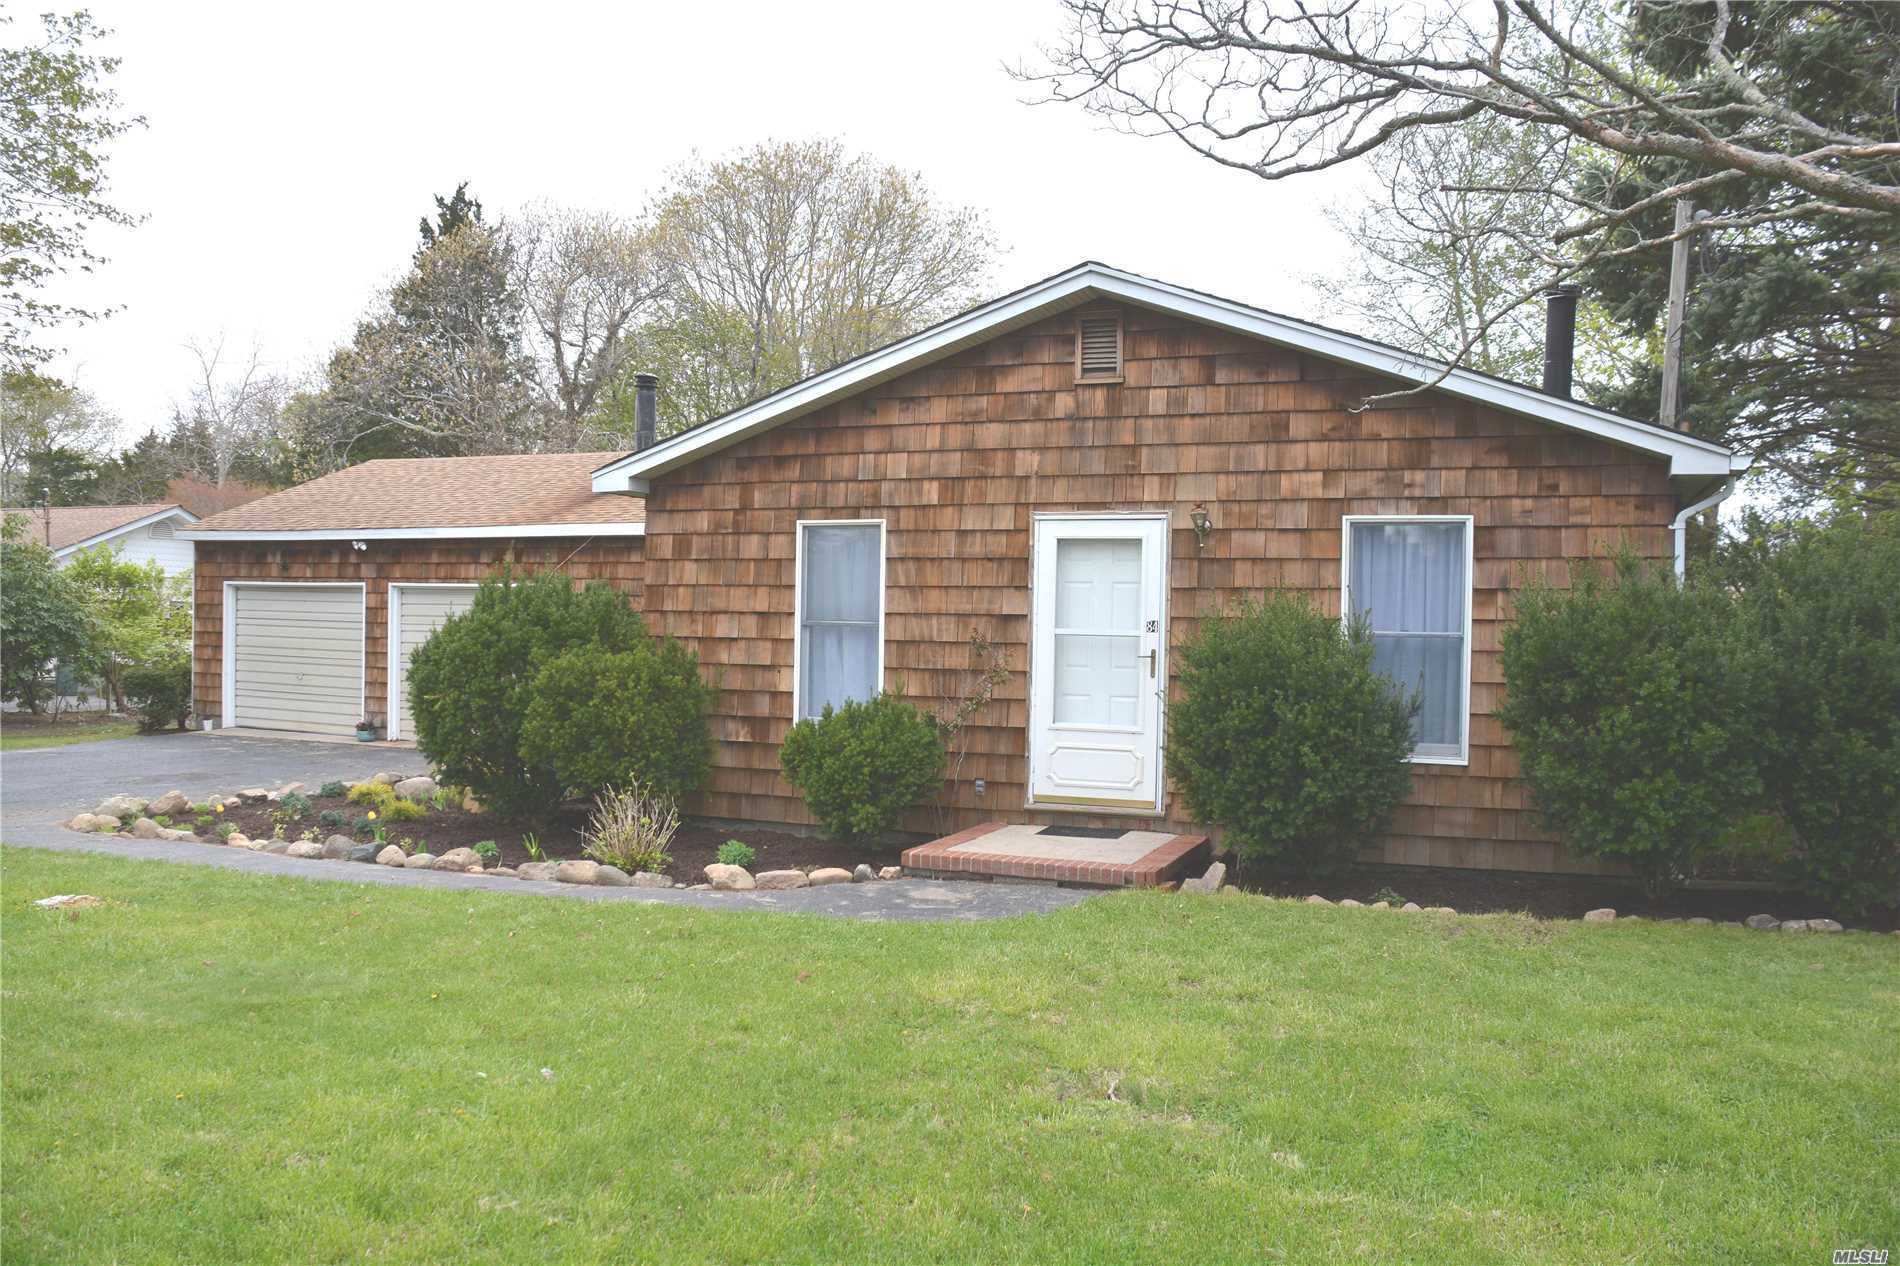 Cedar Shingled Ranch with Seaside South Jamesport Setting. Large backyard with room for pool. Spacious Living Room. Put your own style and ideas onto this blank canvas. Great Location! Close to the marina, numerous sandy beaches and playground. Wine country and fabulous North Fork restaurants.